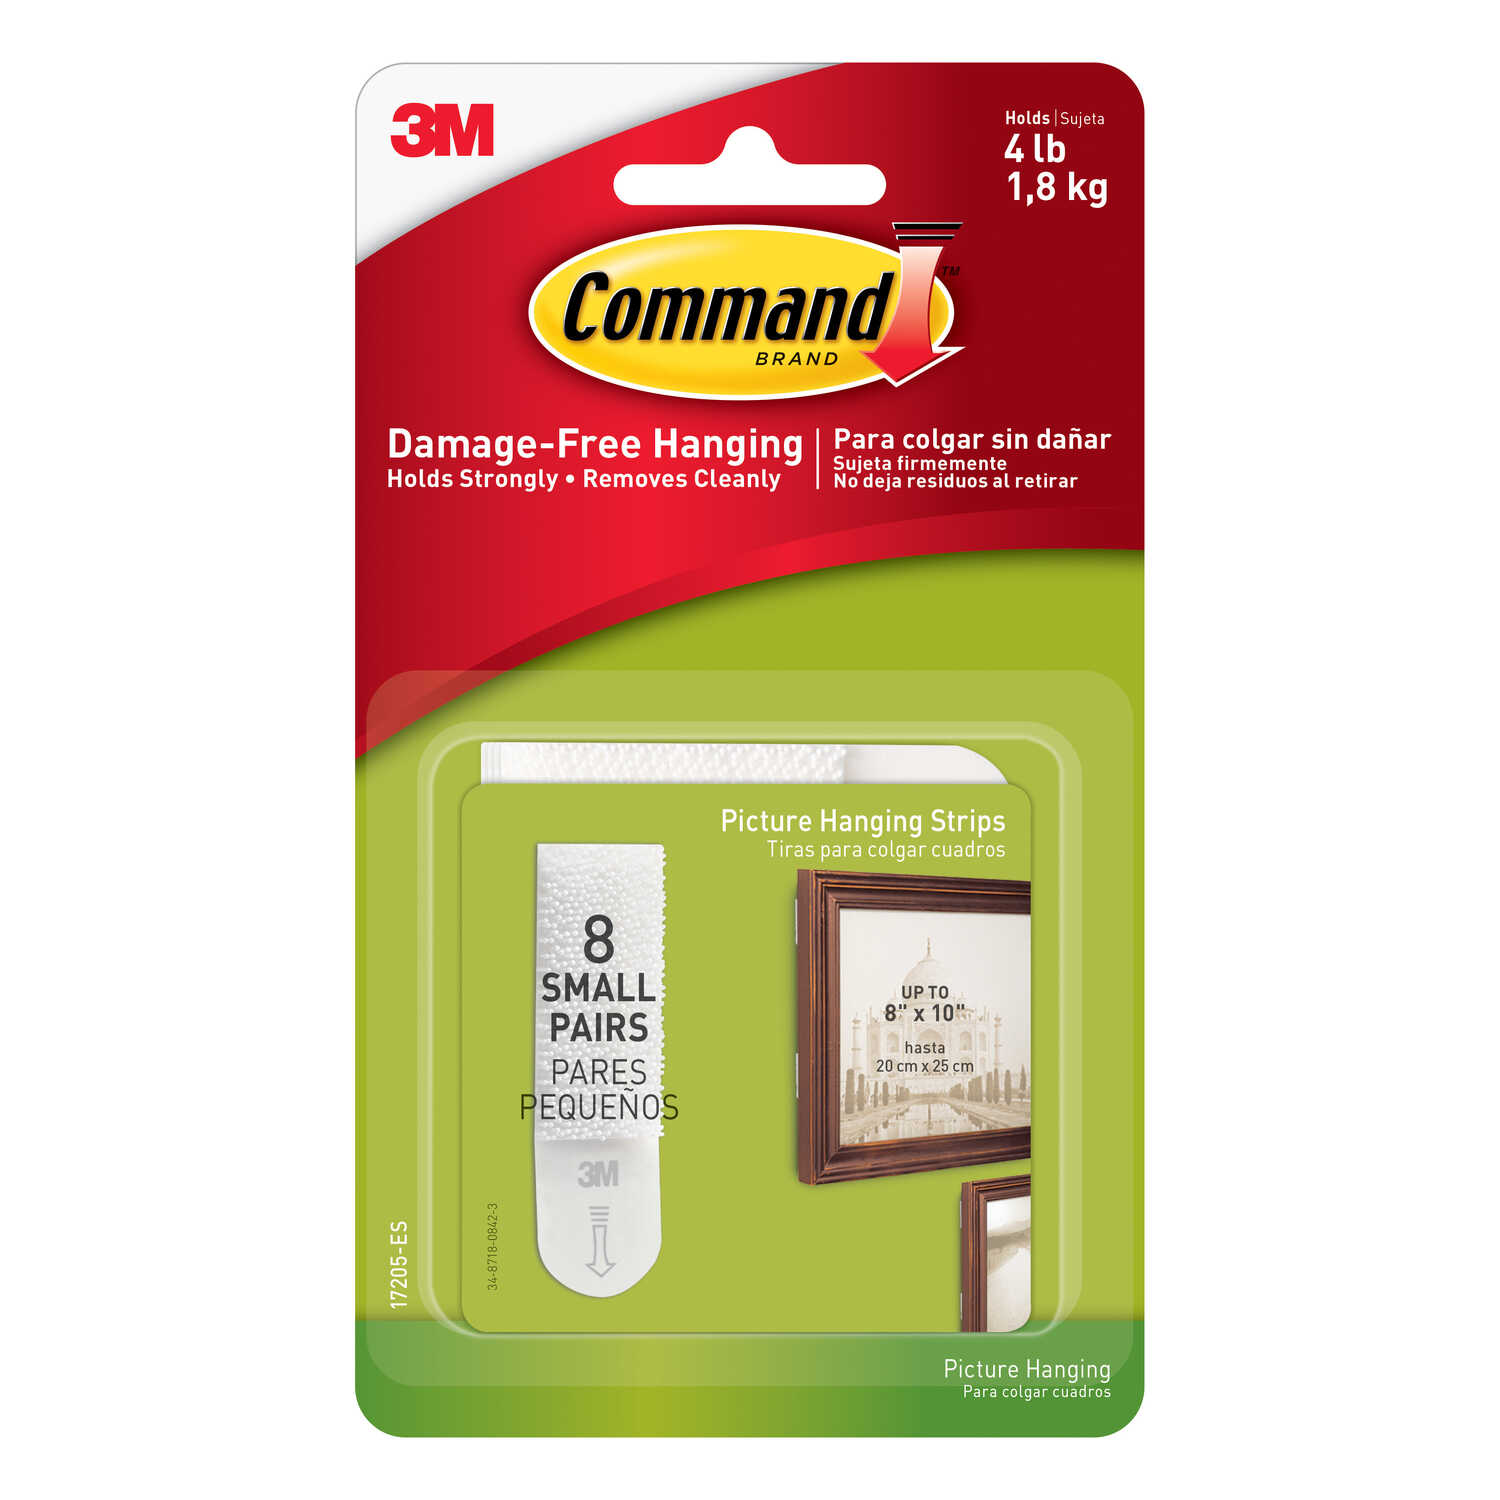 3M  Command  White  Foam  4 lb. Picture Hanging Strips  16 pk